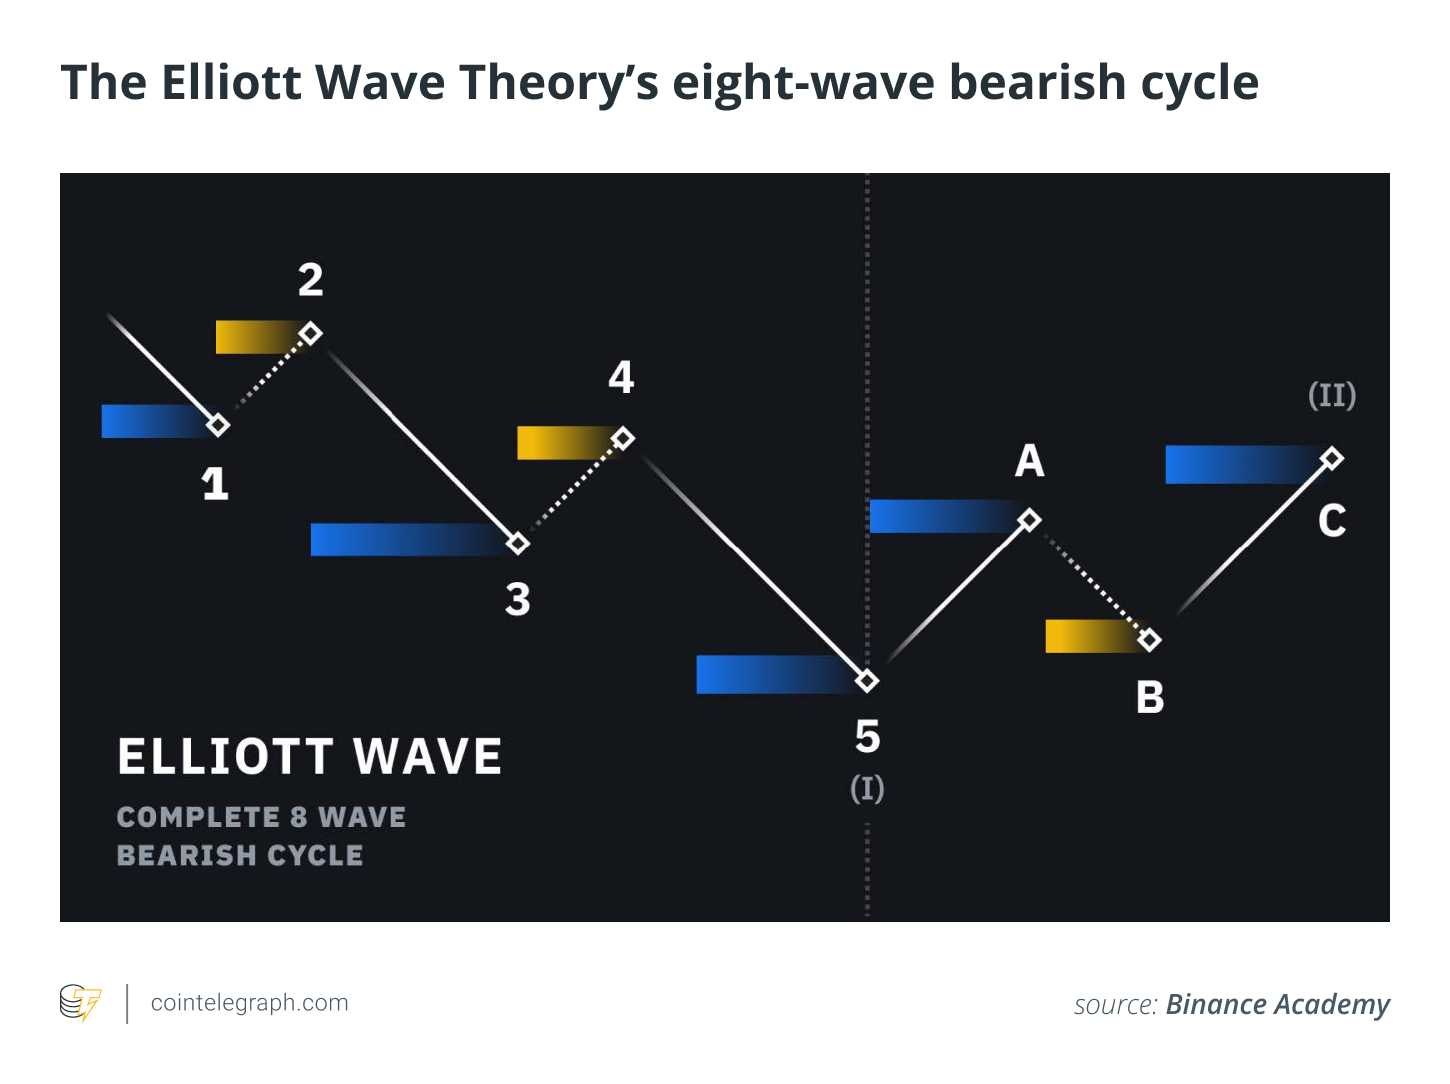 The Elliott Wave Theory's eight-wave bearish cycle